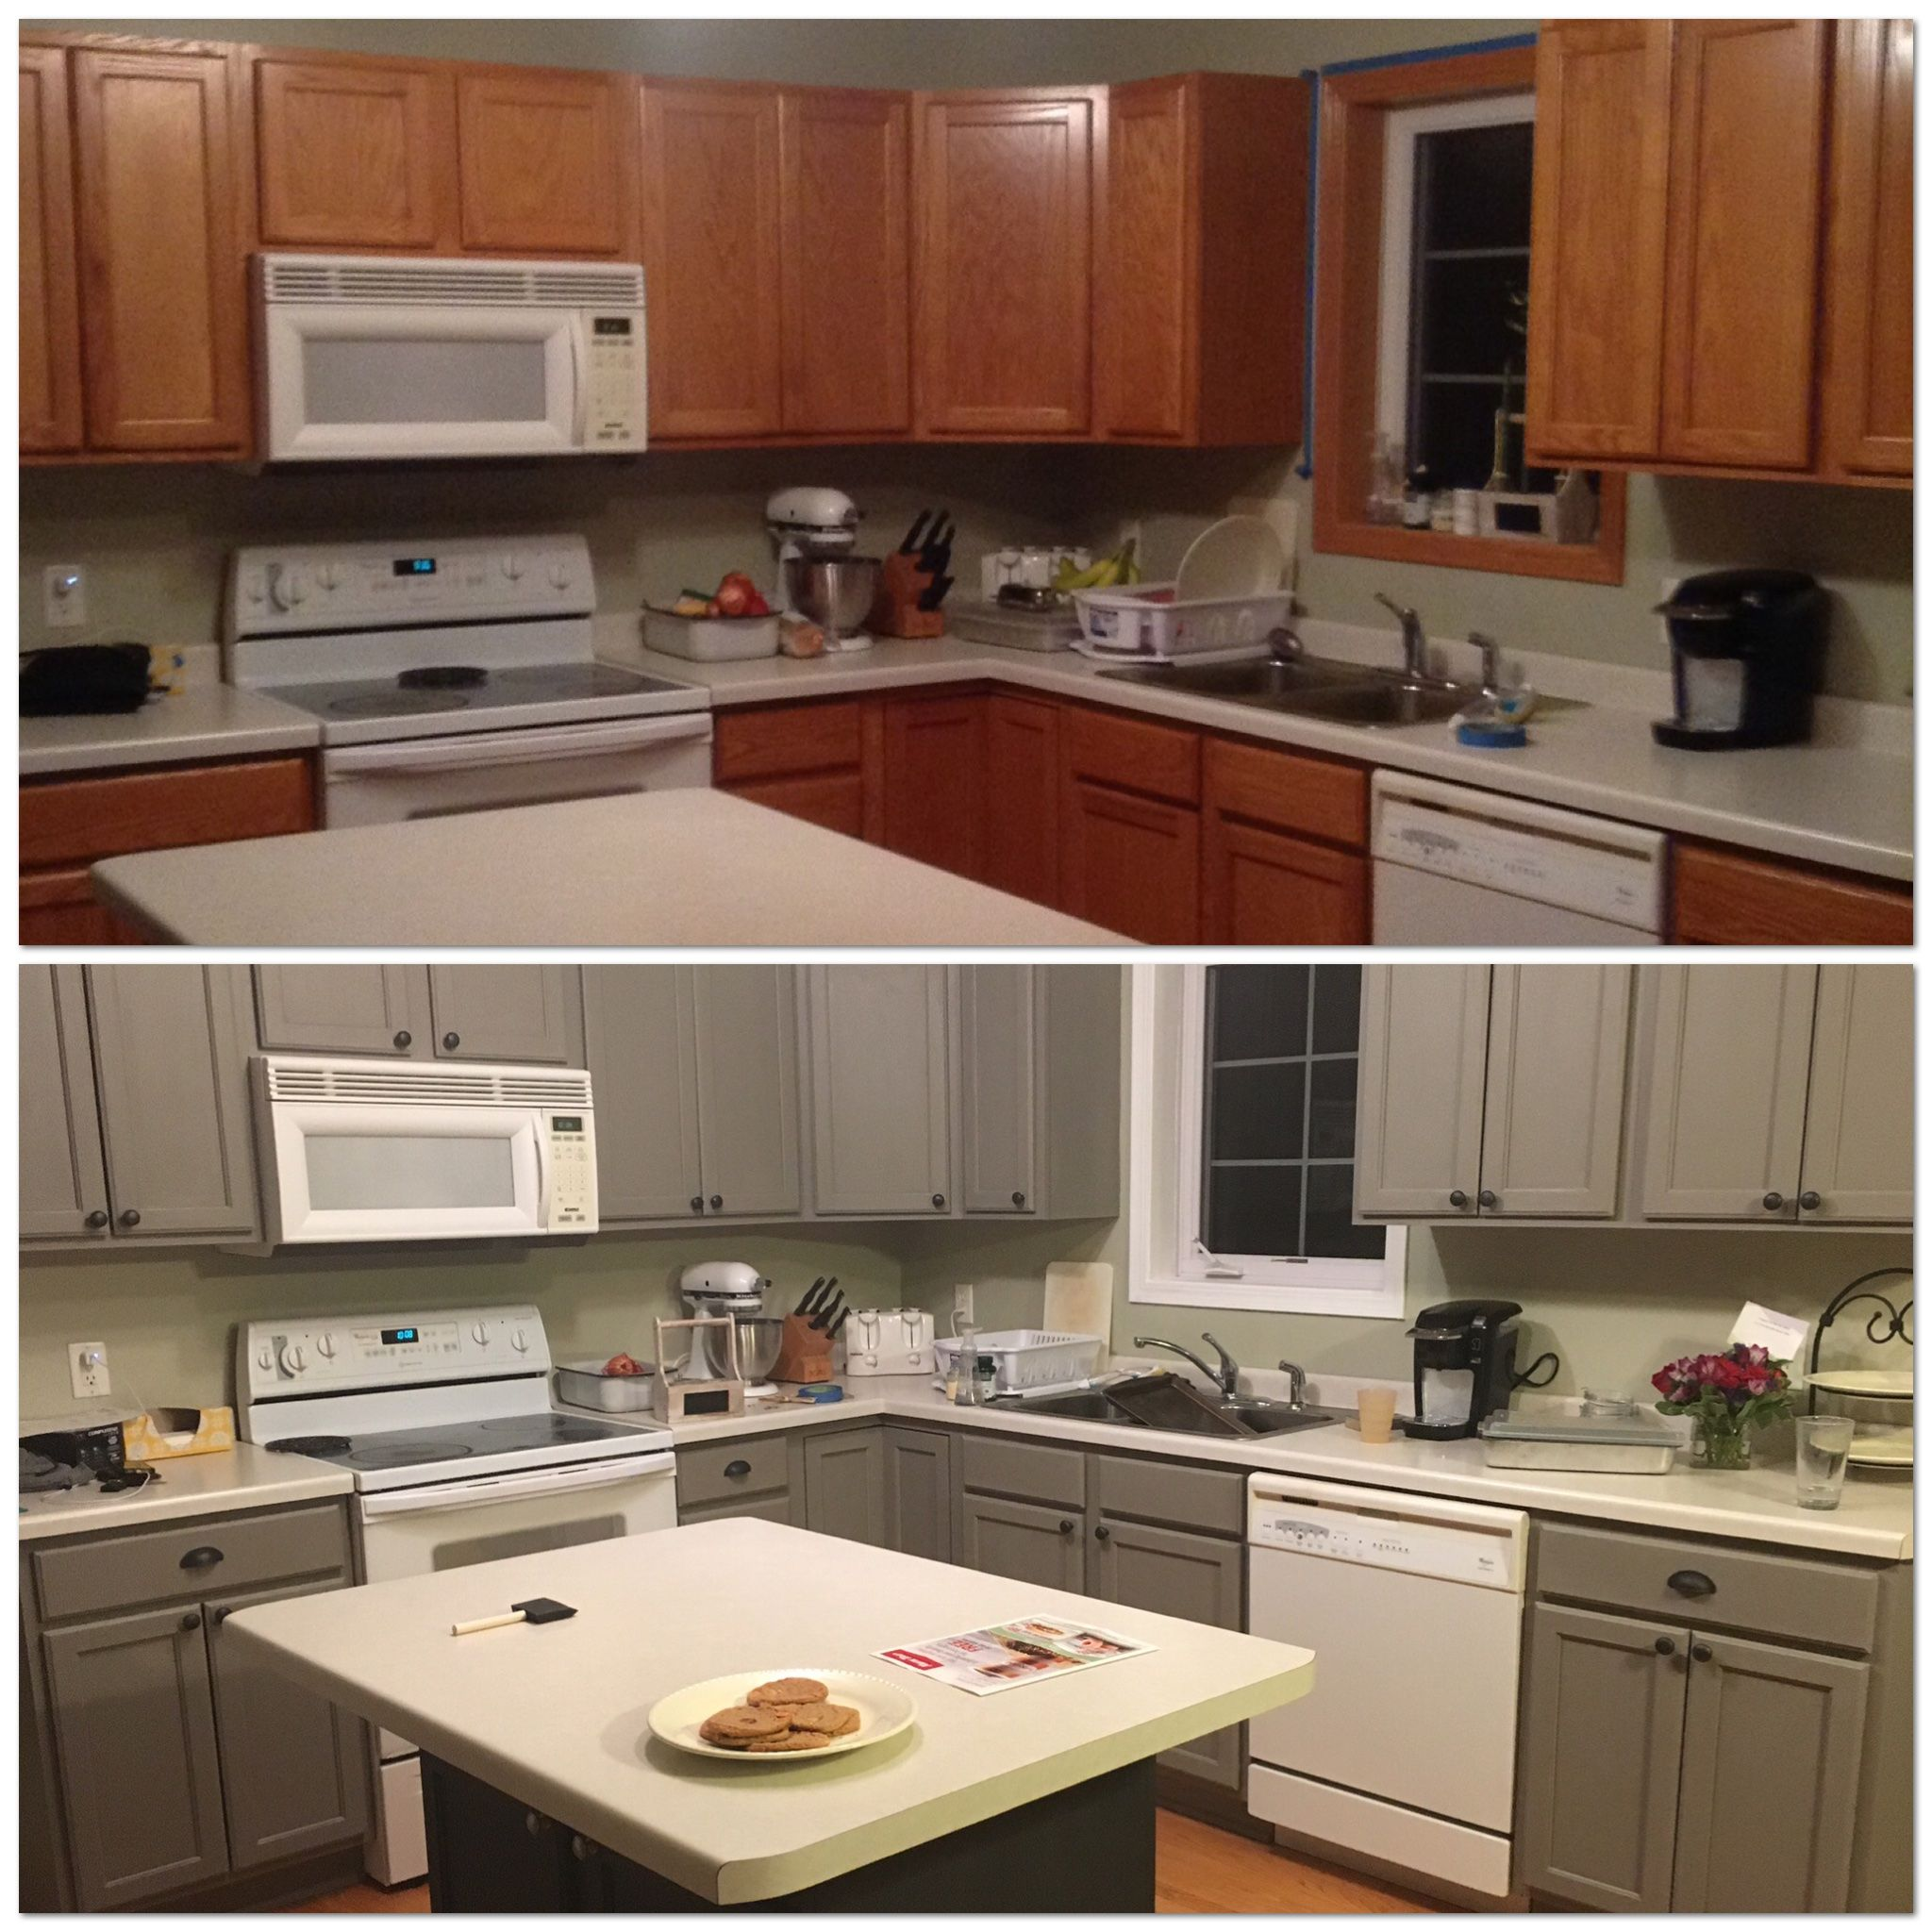 Before And After Painting My Kitchen Cupboards With Annie Sloan French Linen Chalk Paint